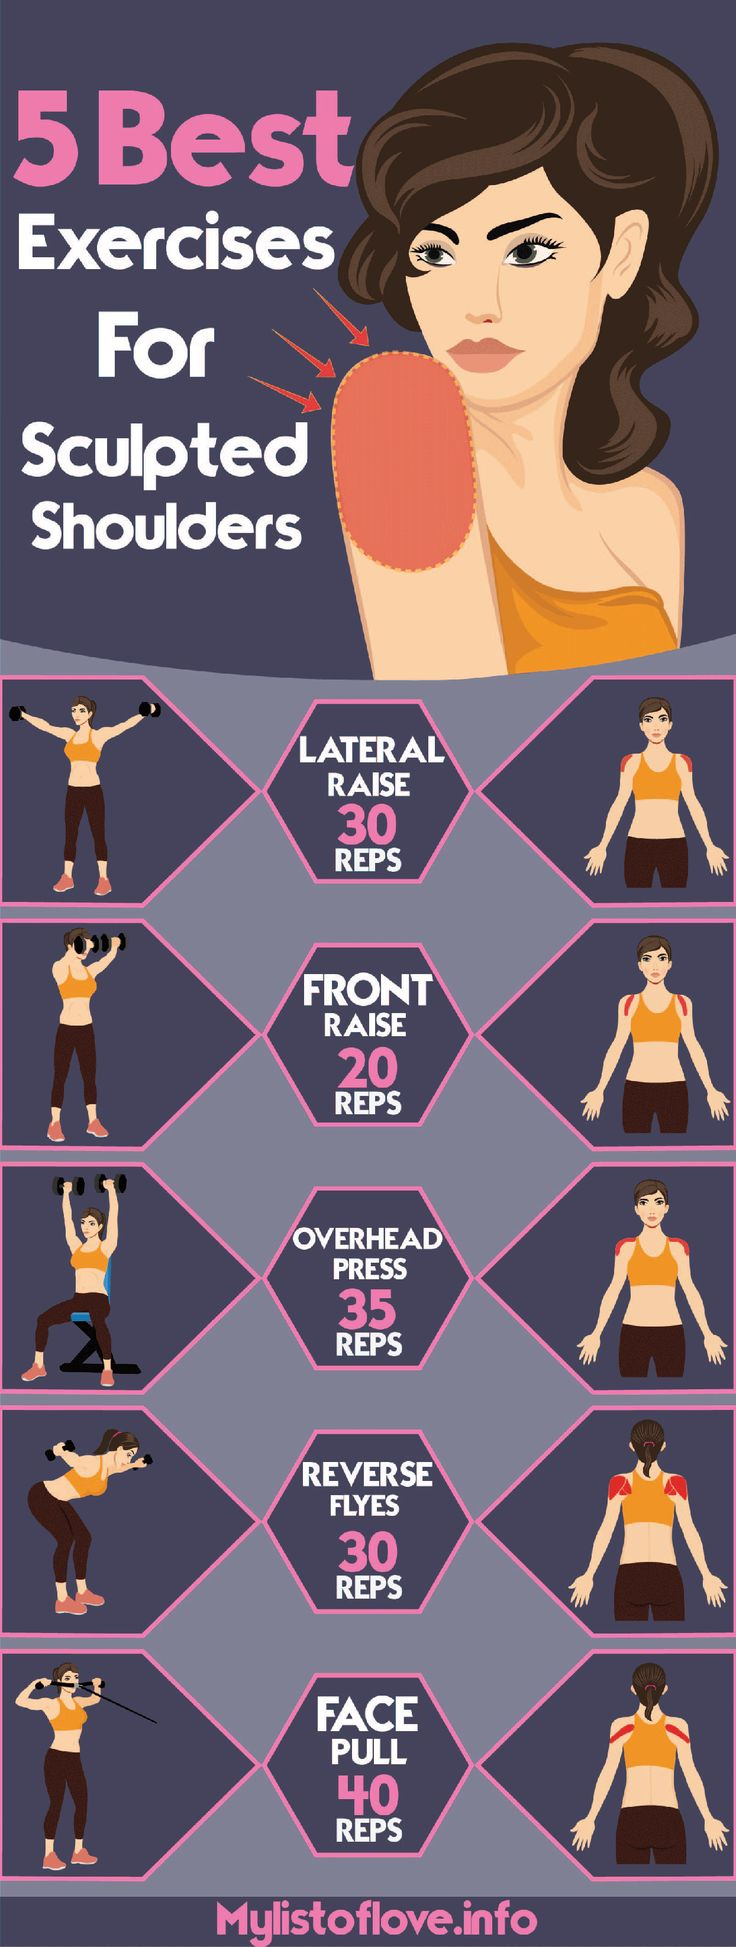 5 Best Exercises For Sculpted Shoulders (With images